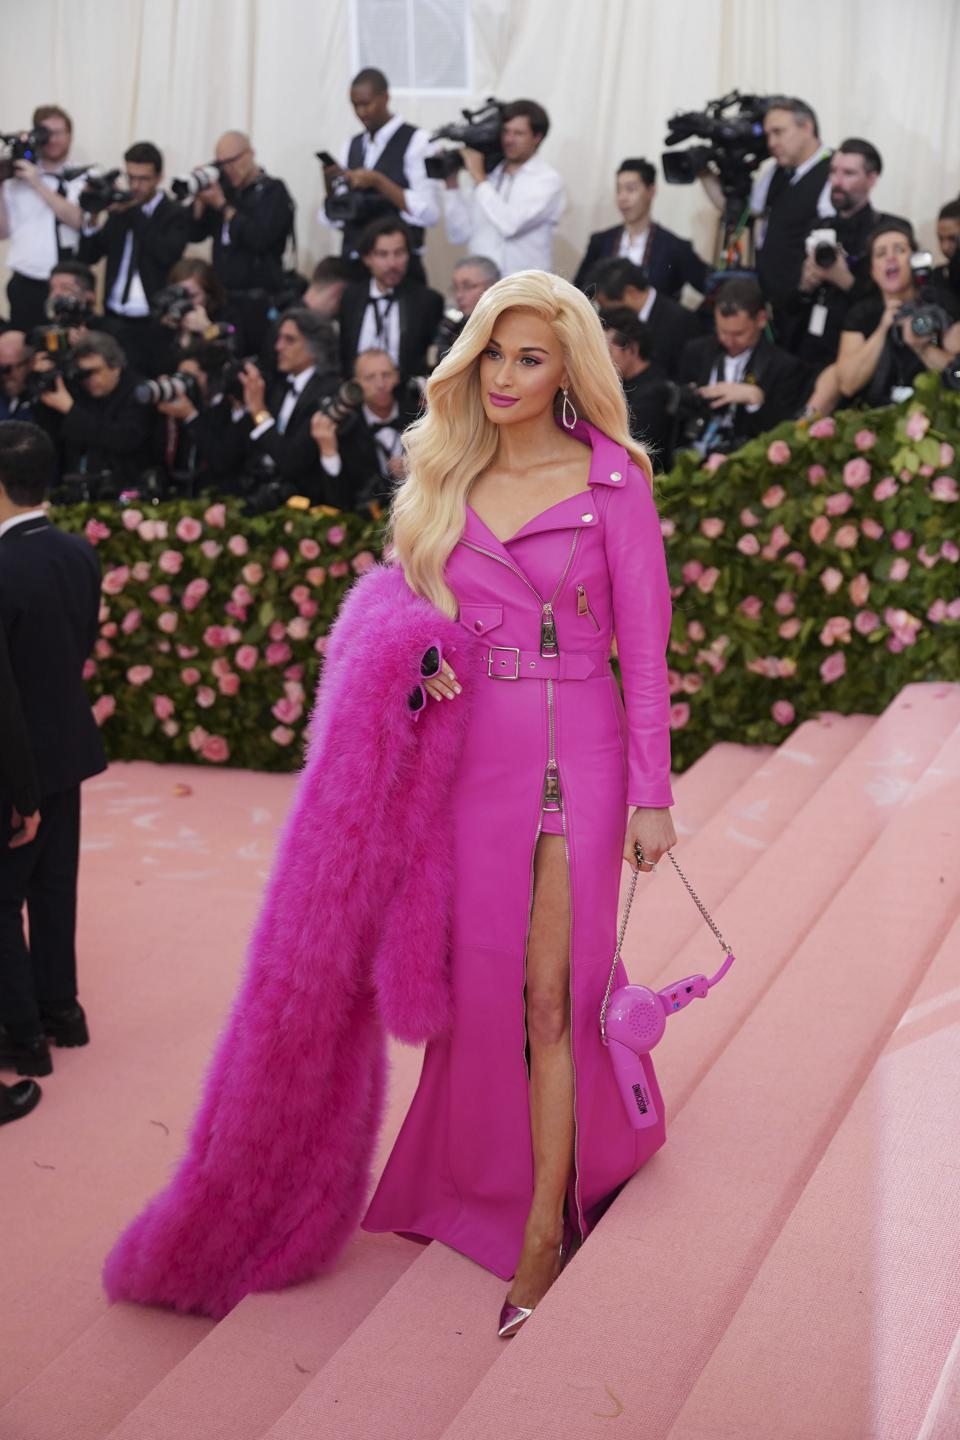 Lessons From The Met Gala: How Fashion's Biggest Event Can Inform Your Brand's Personalization